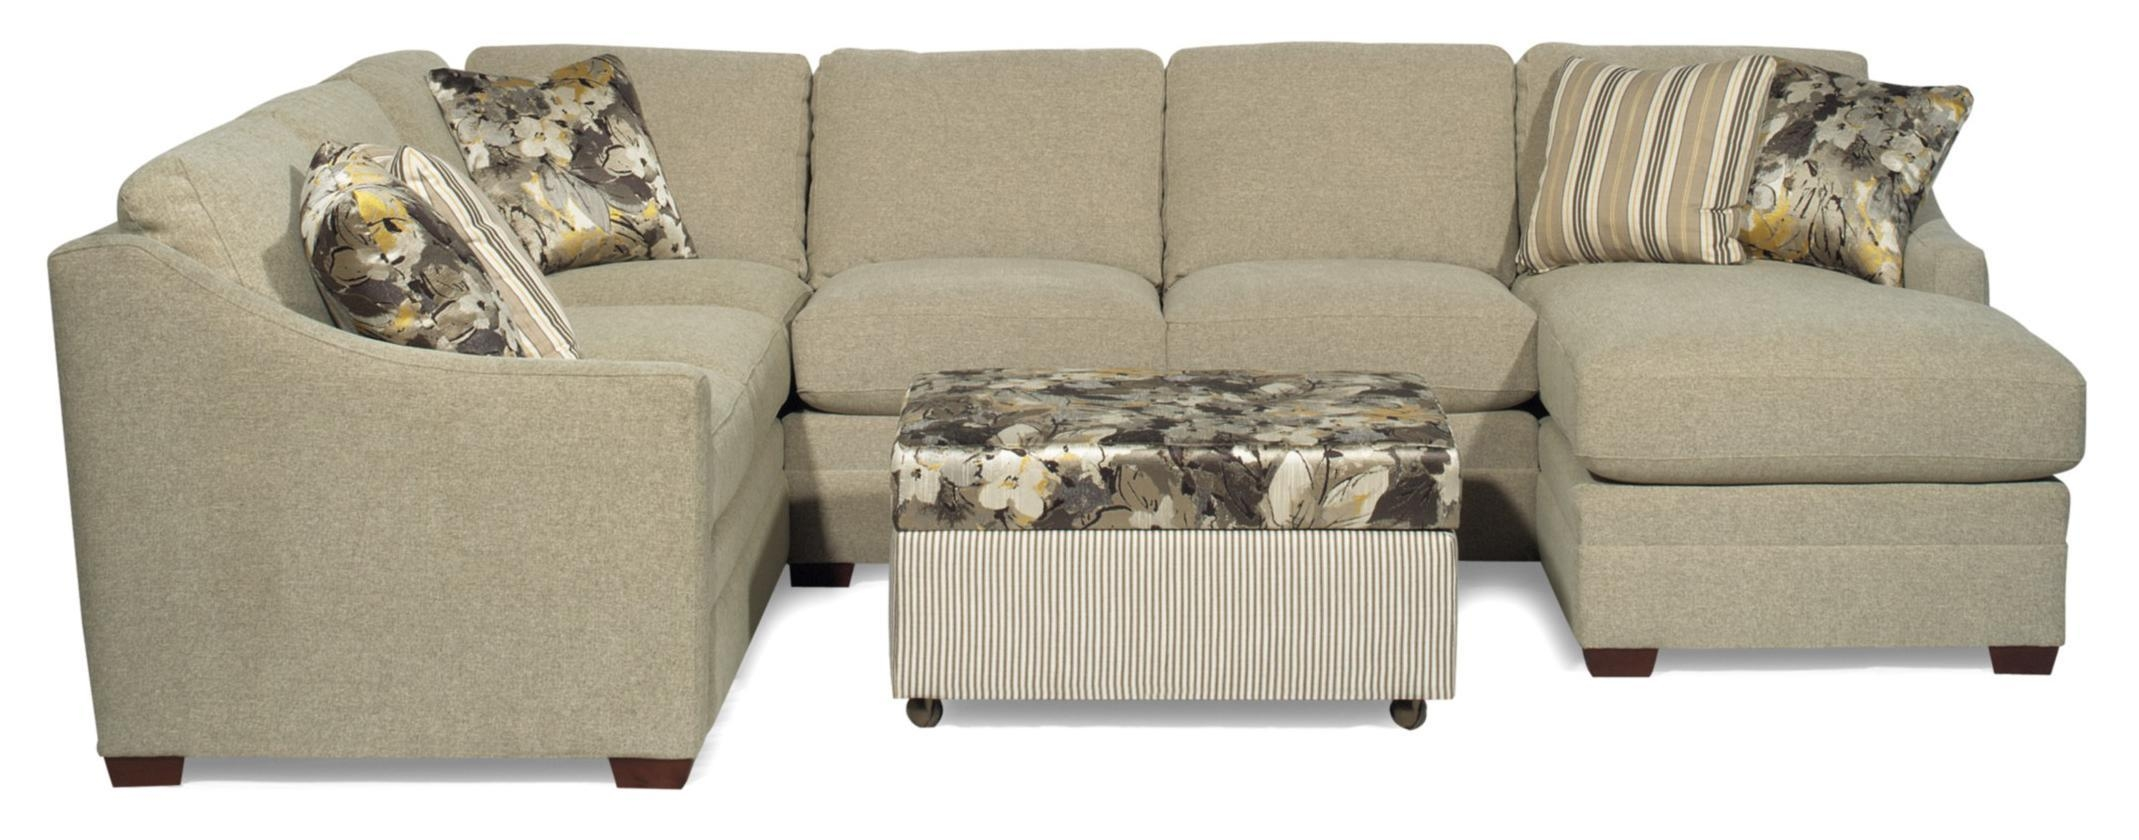 Small Craftmaster Sectional Sofa: 10 Cool Craftmaster Sectional With Craftmaster Sectional (View 9 of 15)